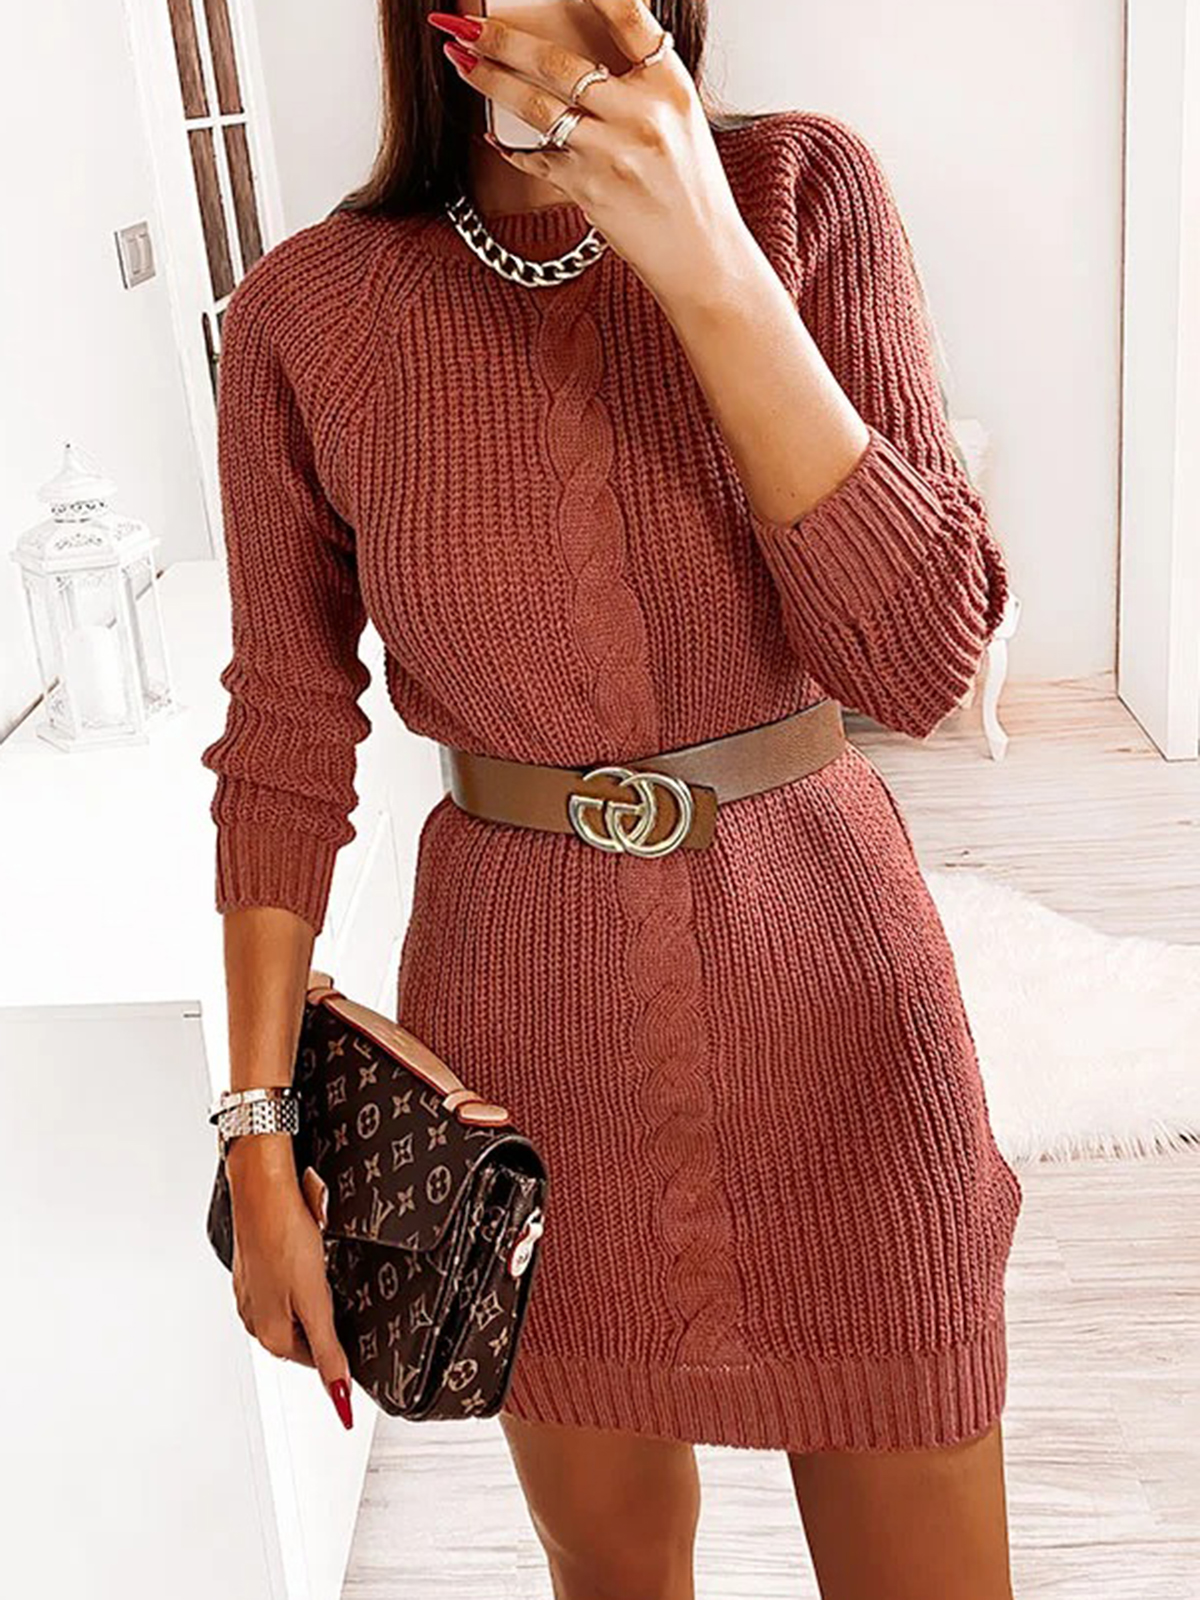 Women'S Autumn And Winter Knitted Sexy Simple Sexy Dress